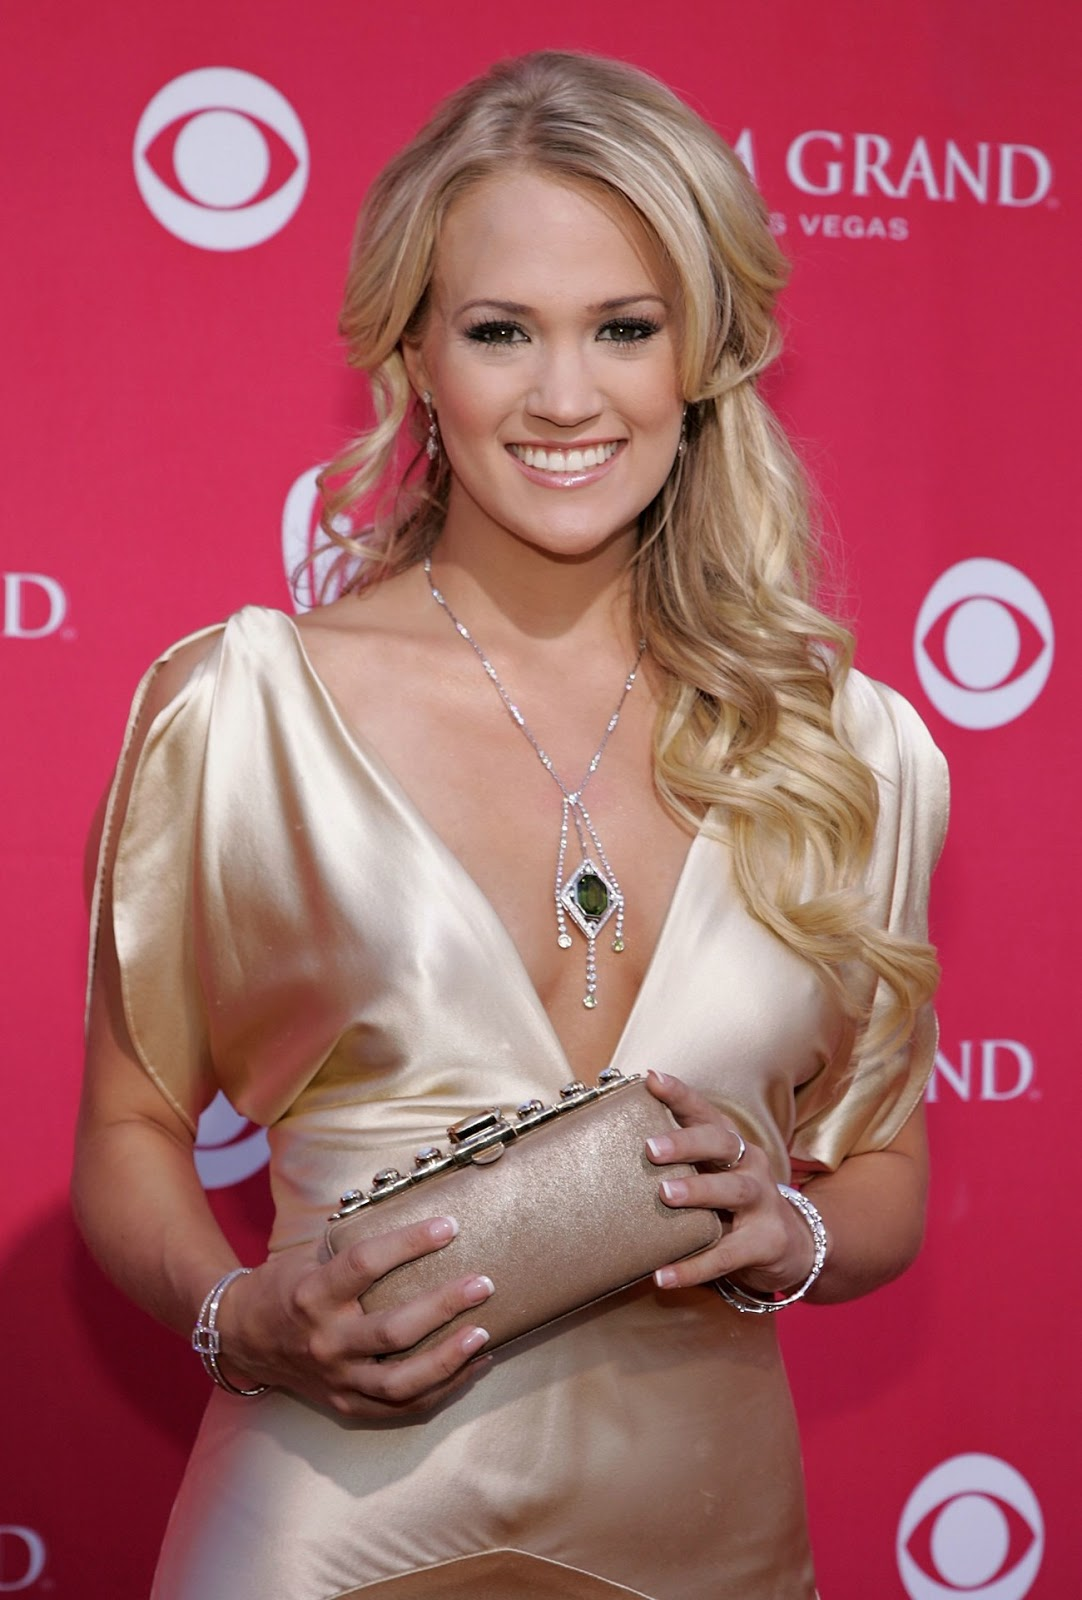 Carrie Underwood Cleavage Pics